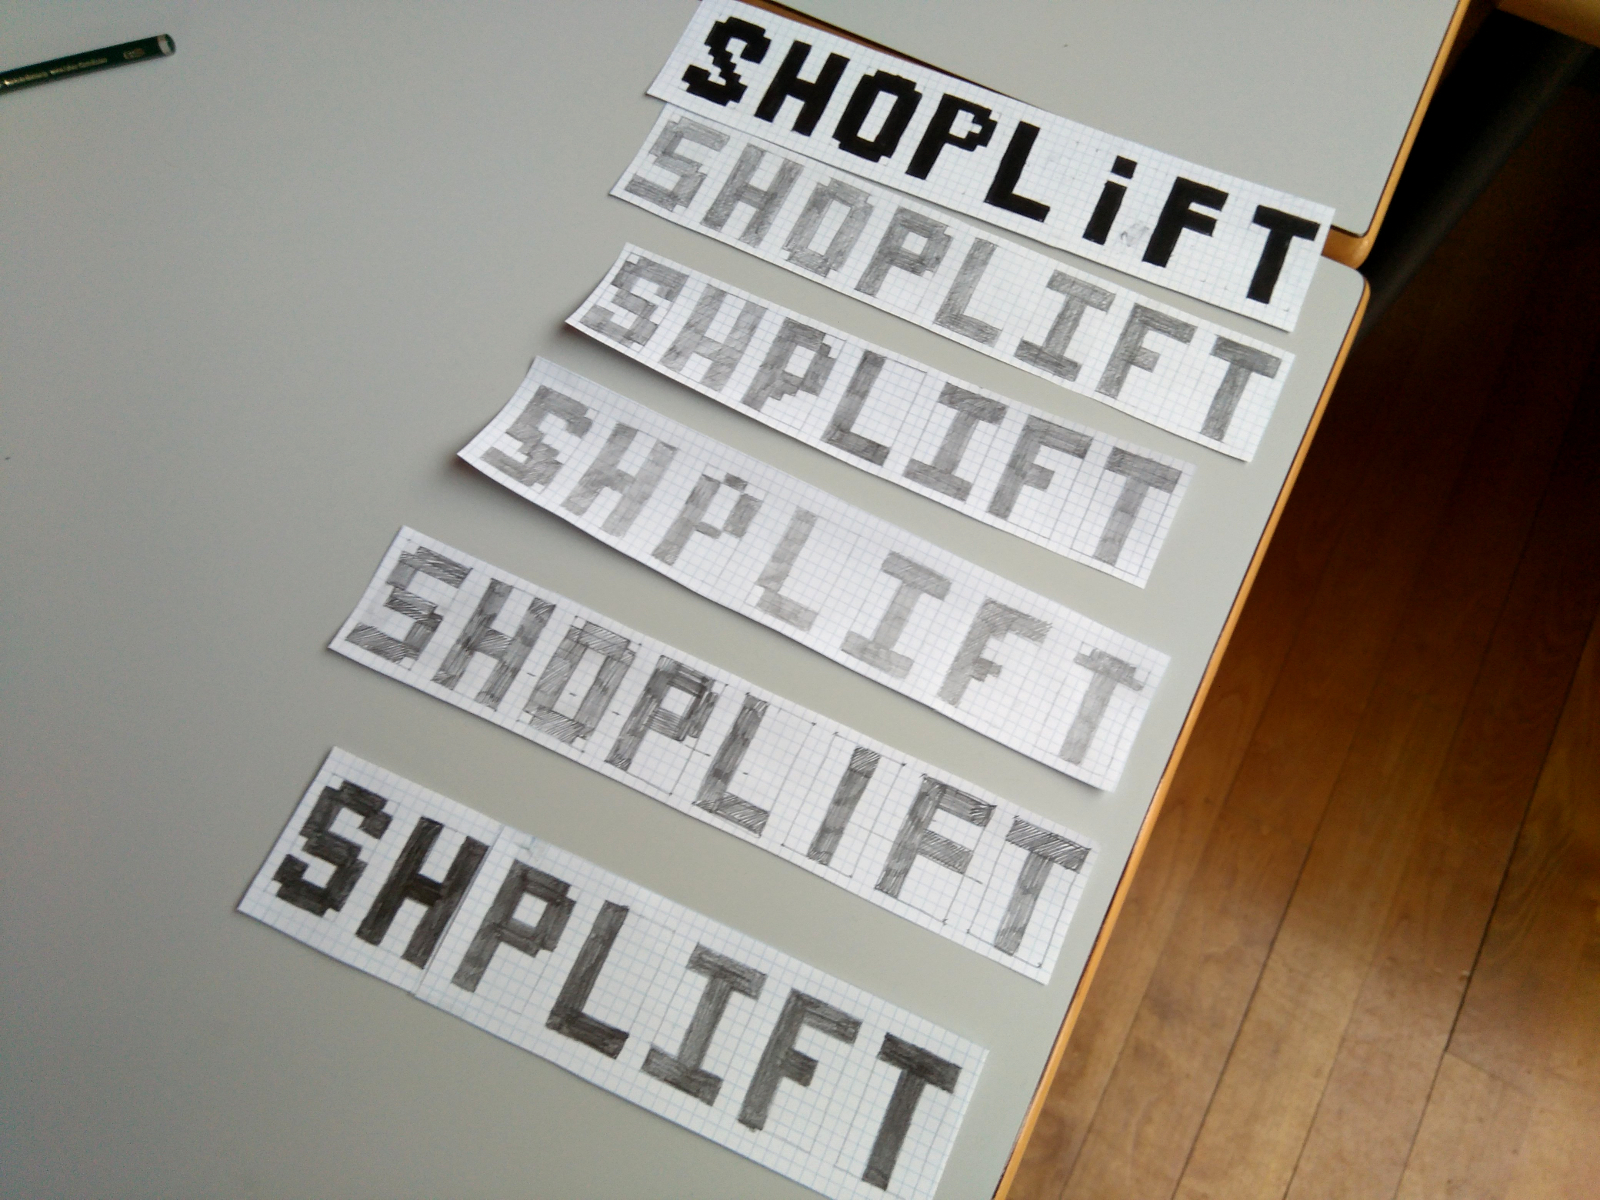 Shoplift sketches, photo by Manufactura